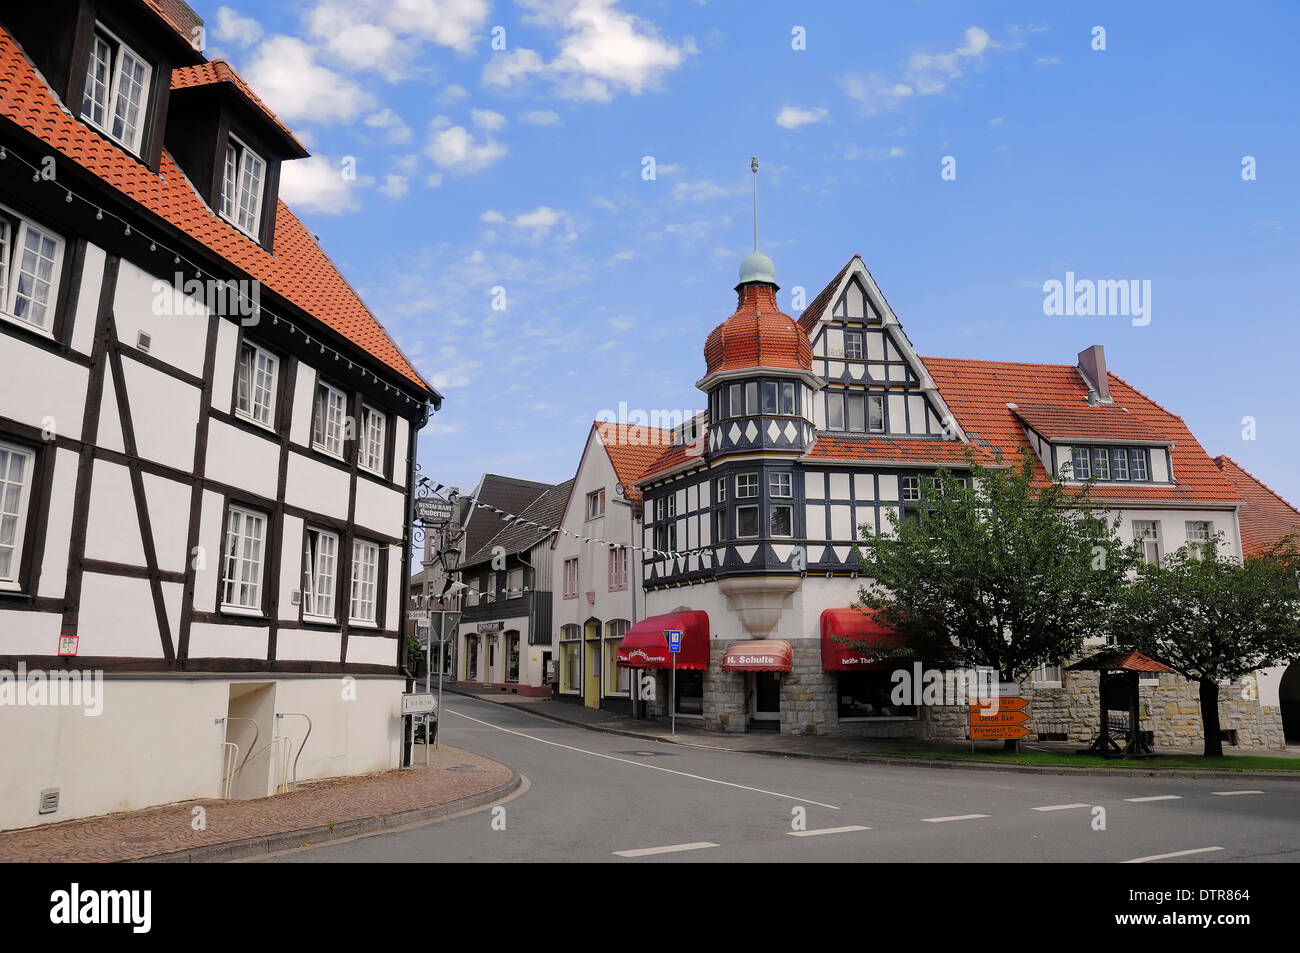 Timber-framed houses, Ennigerloh, Munsterland, North Rhine-Westphalia, Germany - Stock Image